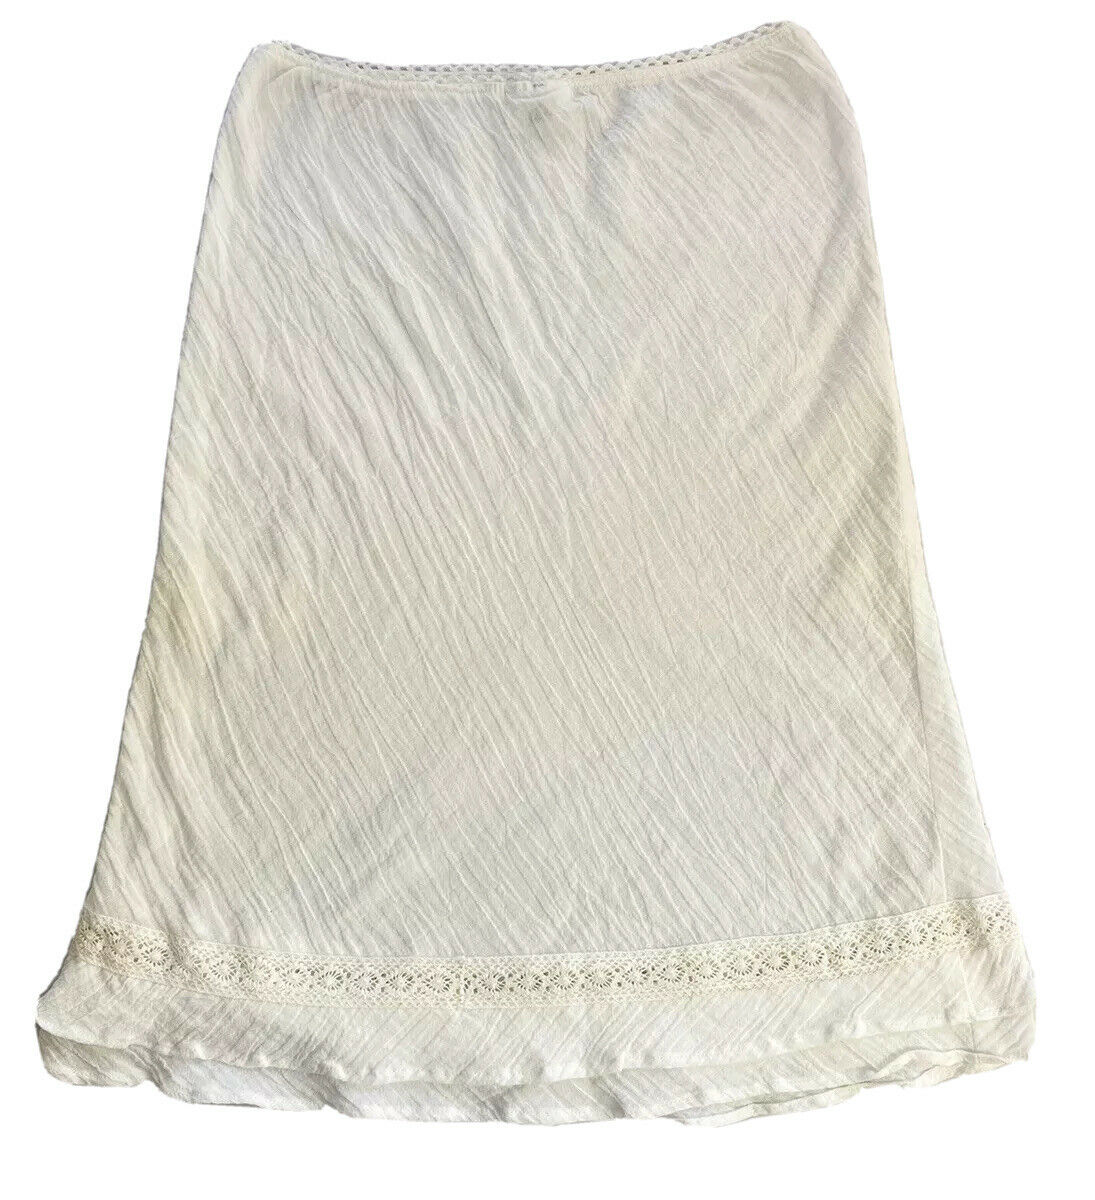 Fairycore White mid lenght skirt - image 1